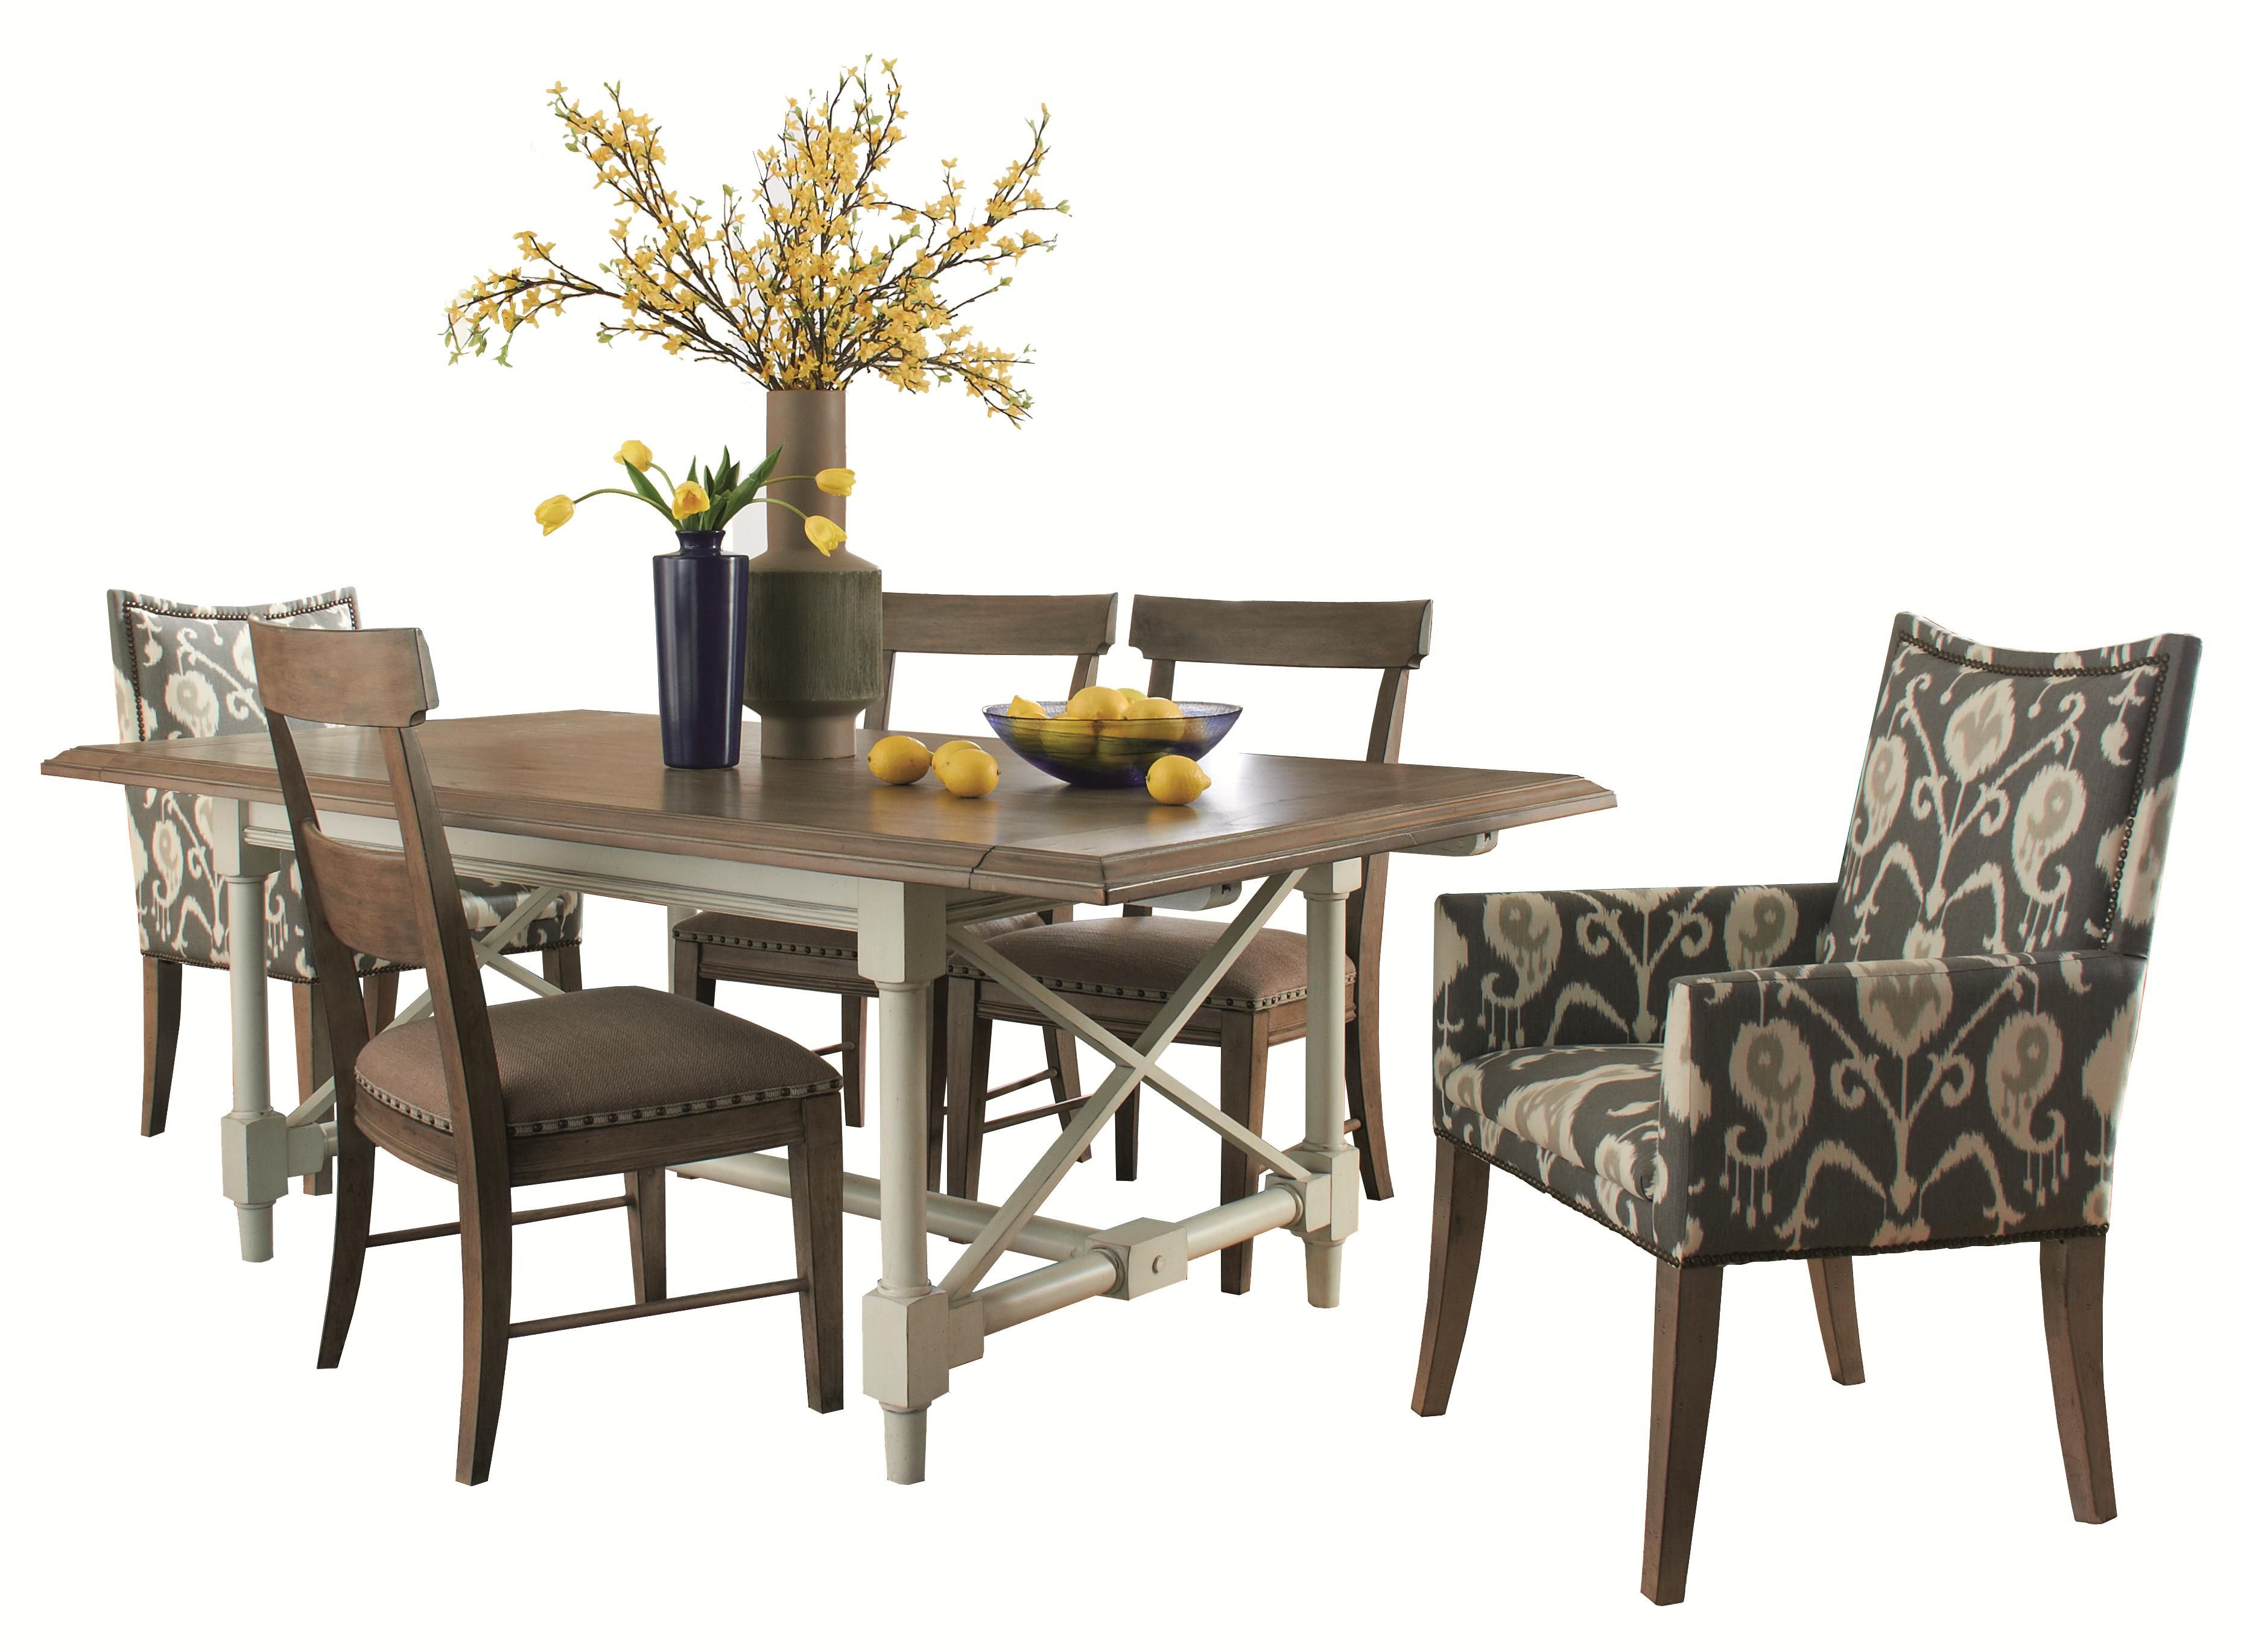 Caravan Dining Table and Chair Set by HGTV Home Furniture Collection ...